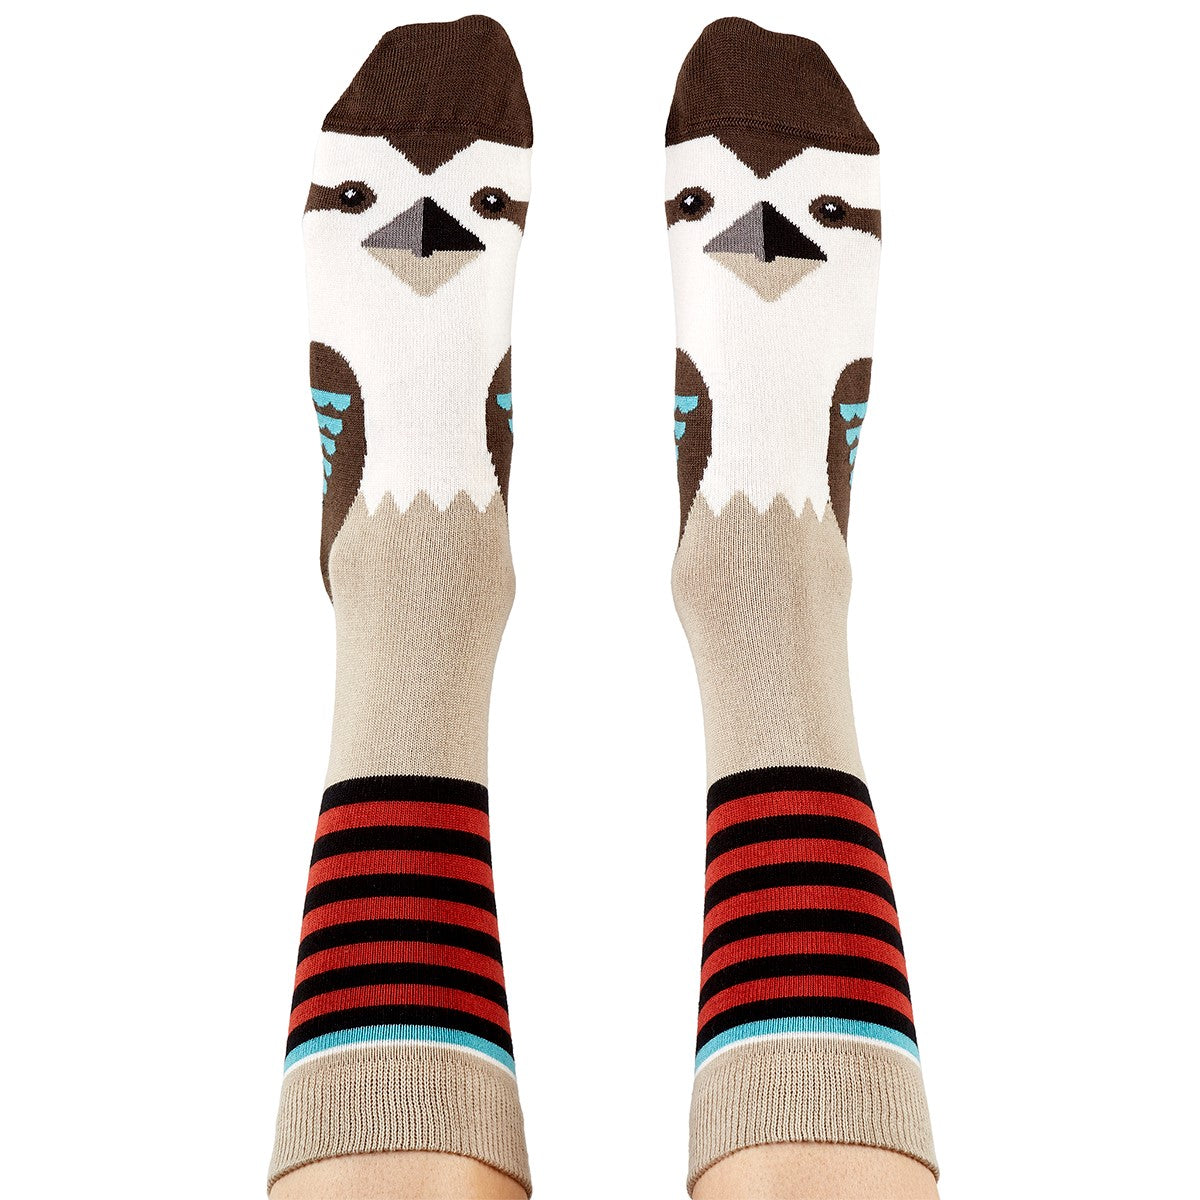 Kookaburra Socks - Stylish Australiana - Ethical Australian Gifts and Souvenirs